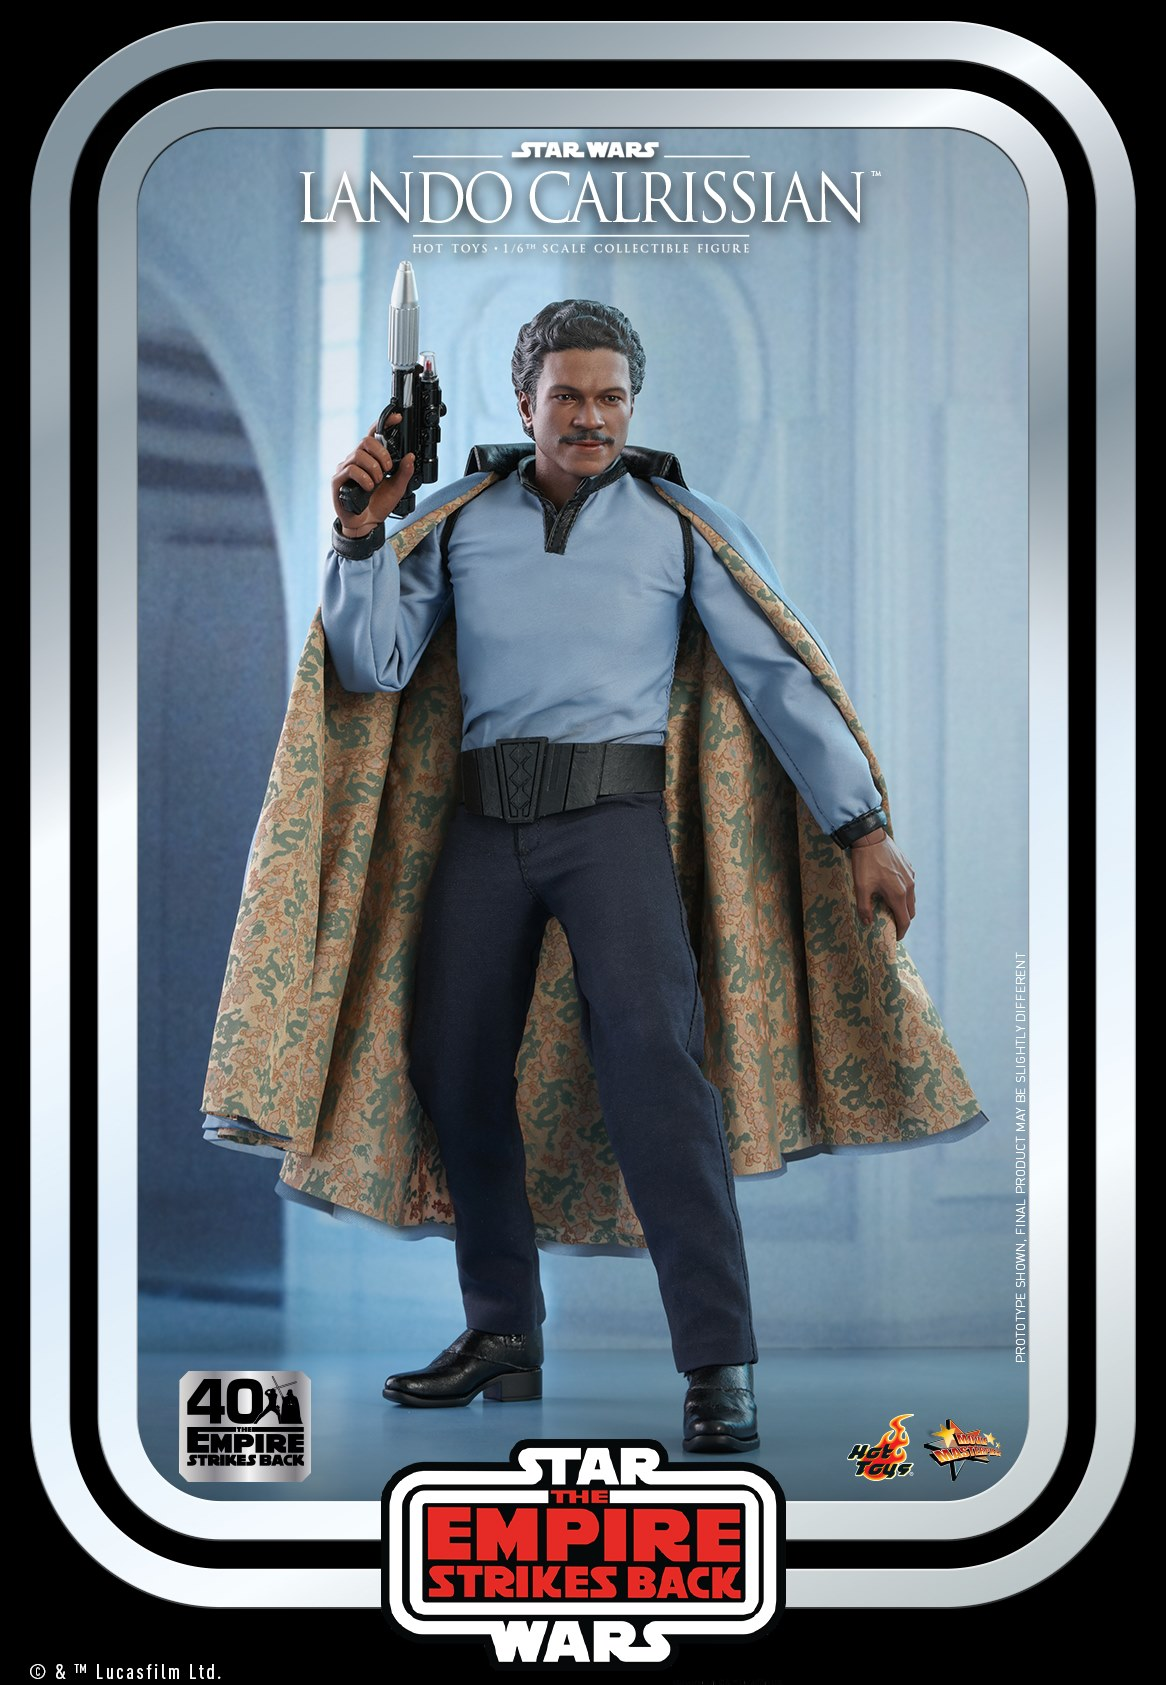 Pre-Order Hot Toys Star Wars Lando Calrissian 1:6th Figure